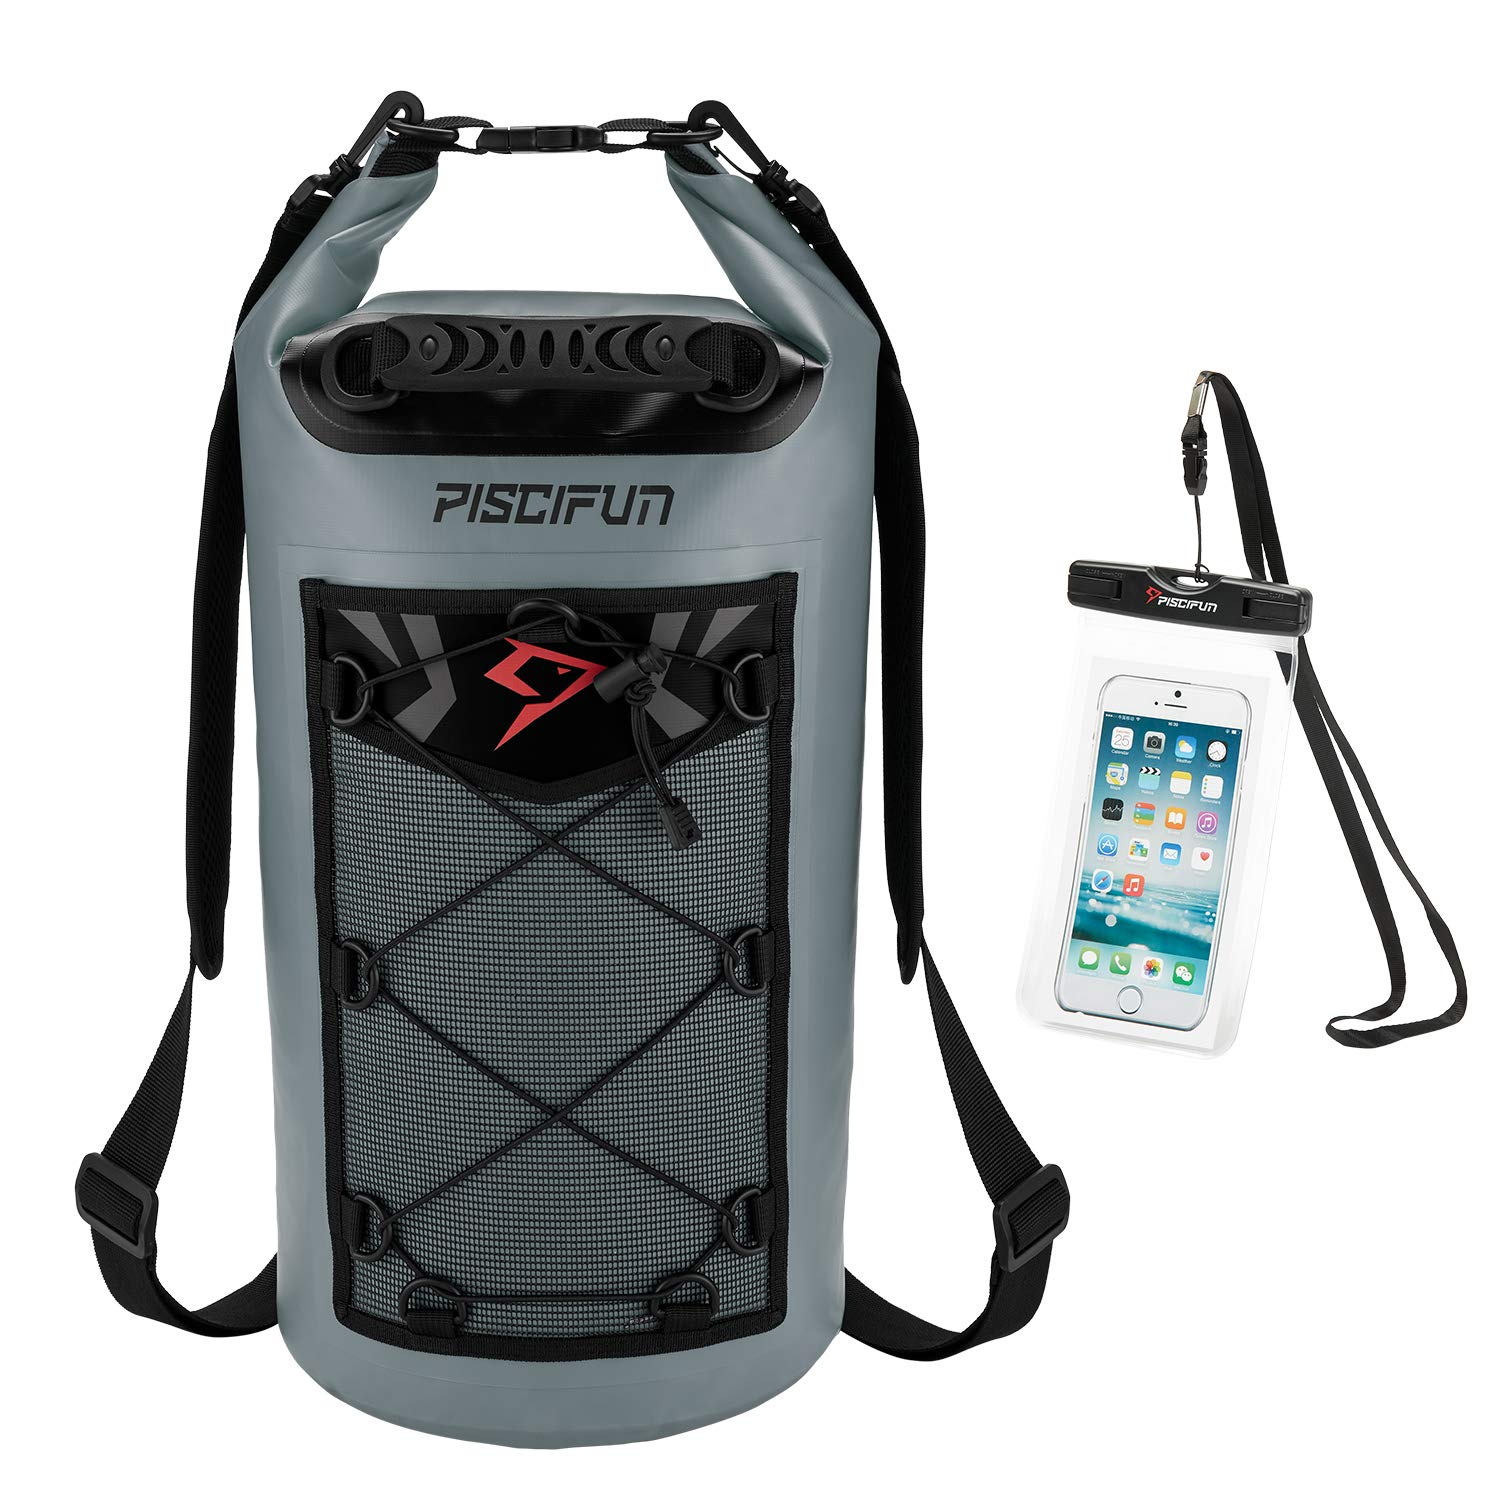 Piscifun Waterproof Dry Bag Backpack Floating Dry Backpack for Water Sports - Fishing Boating Kayaking Surfing Rafting Camping Gifts for Men and Women Free Waterproof Phone Case Grey 10L